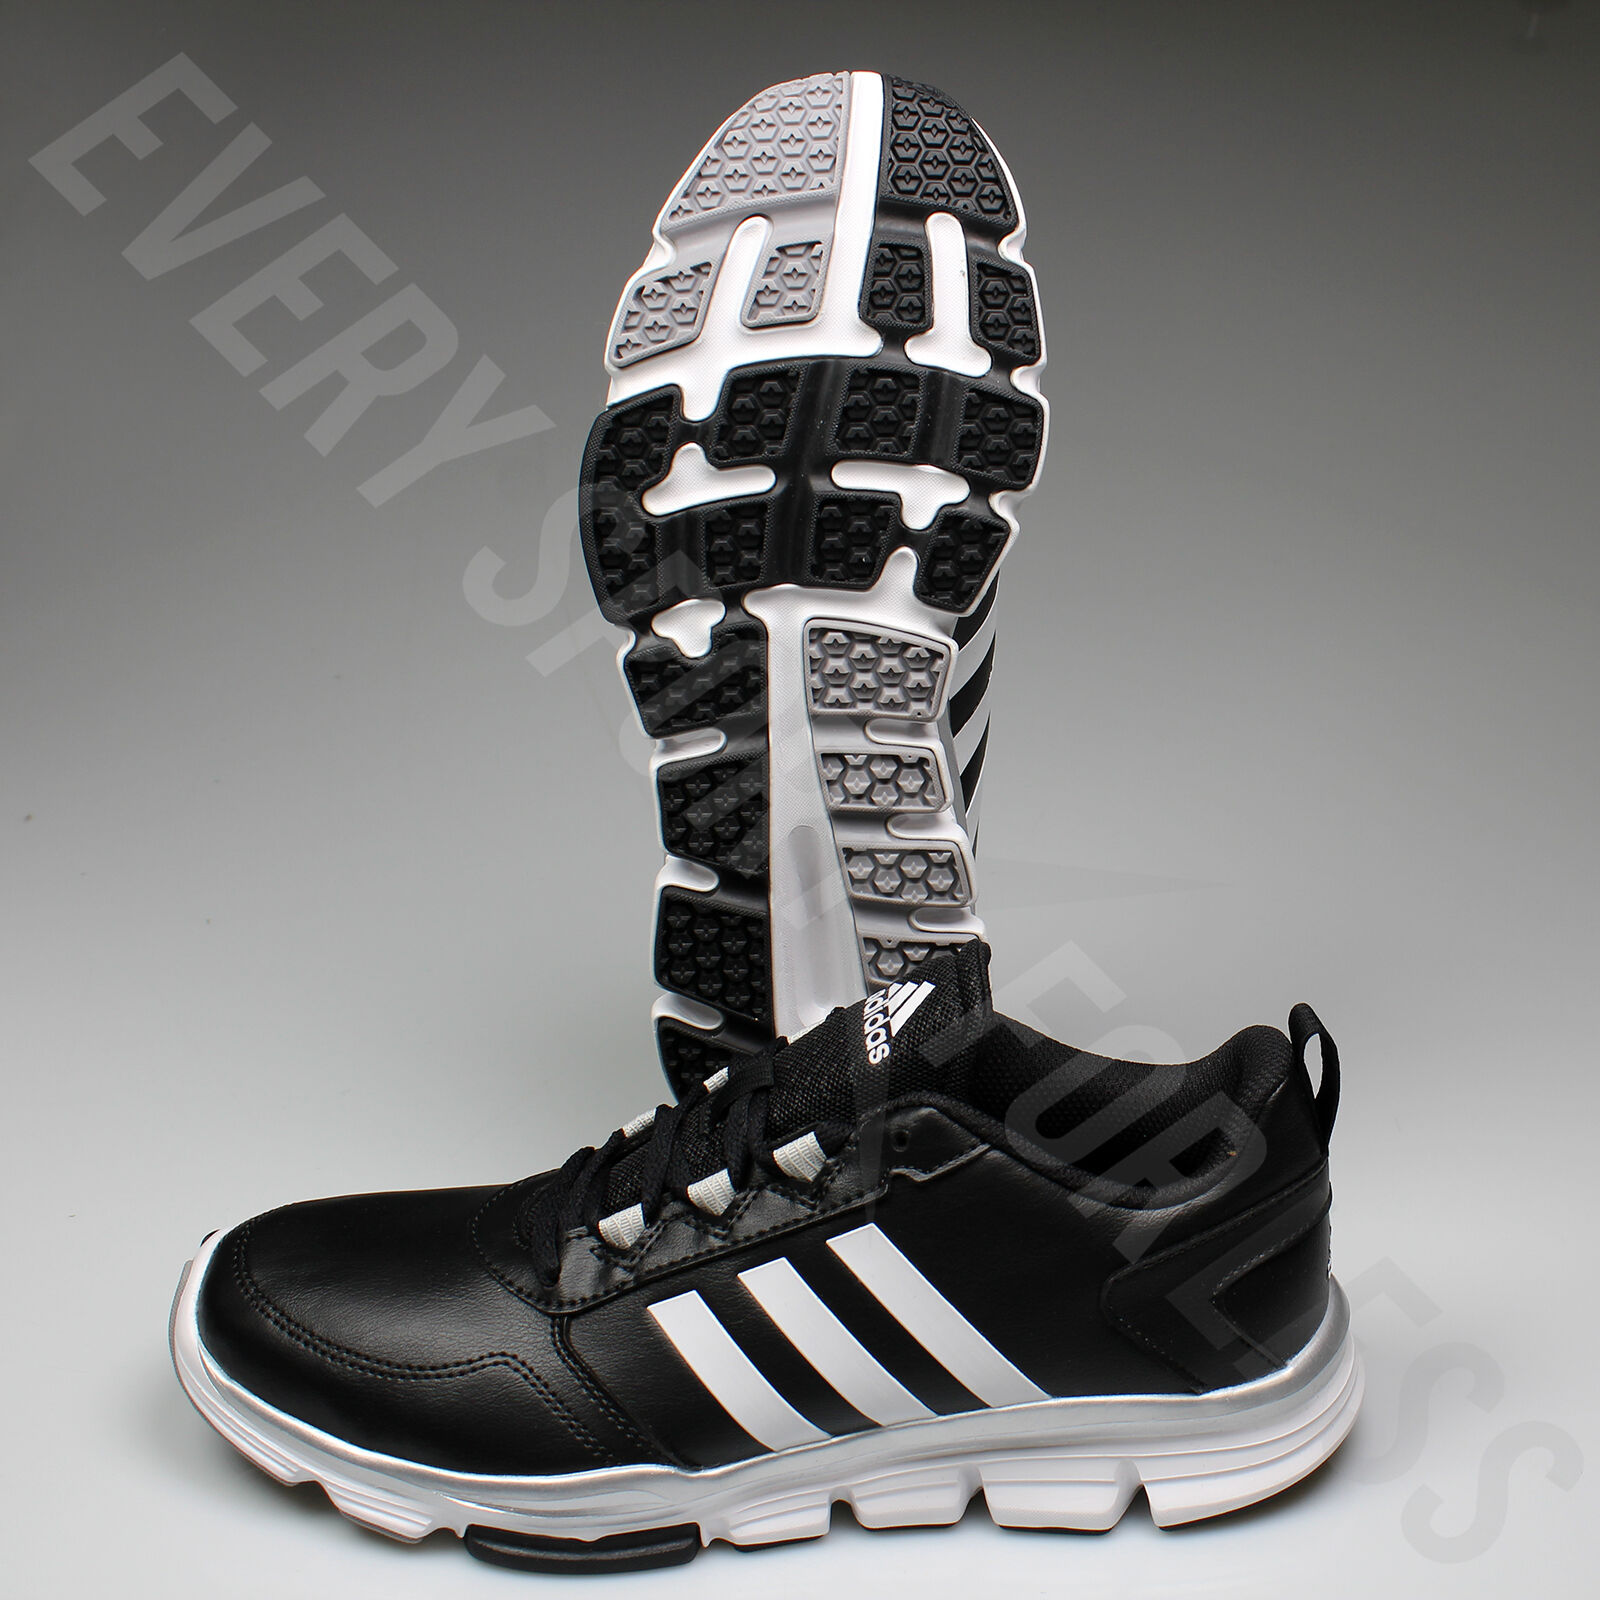 Adidas Speed Trainer 2 Men's Baseball shoes F37651 - Blk Sil Wht (NEW) Lists@